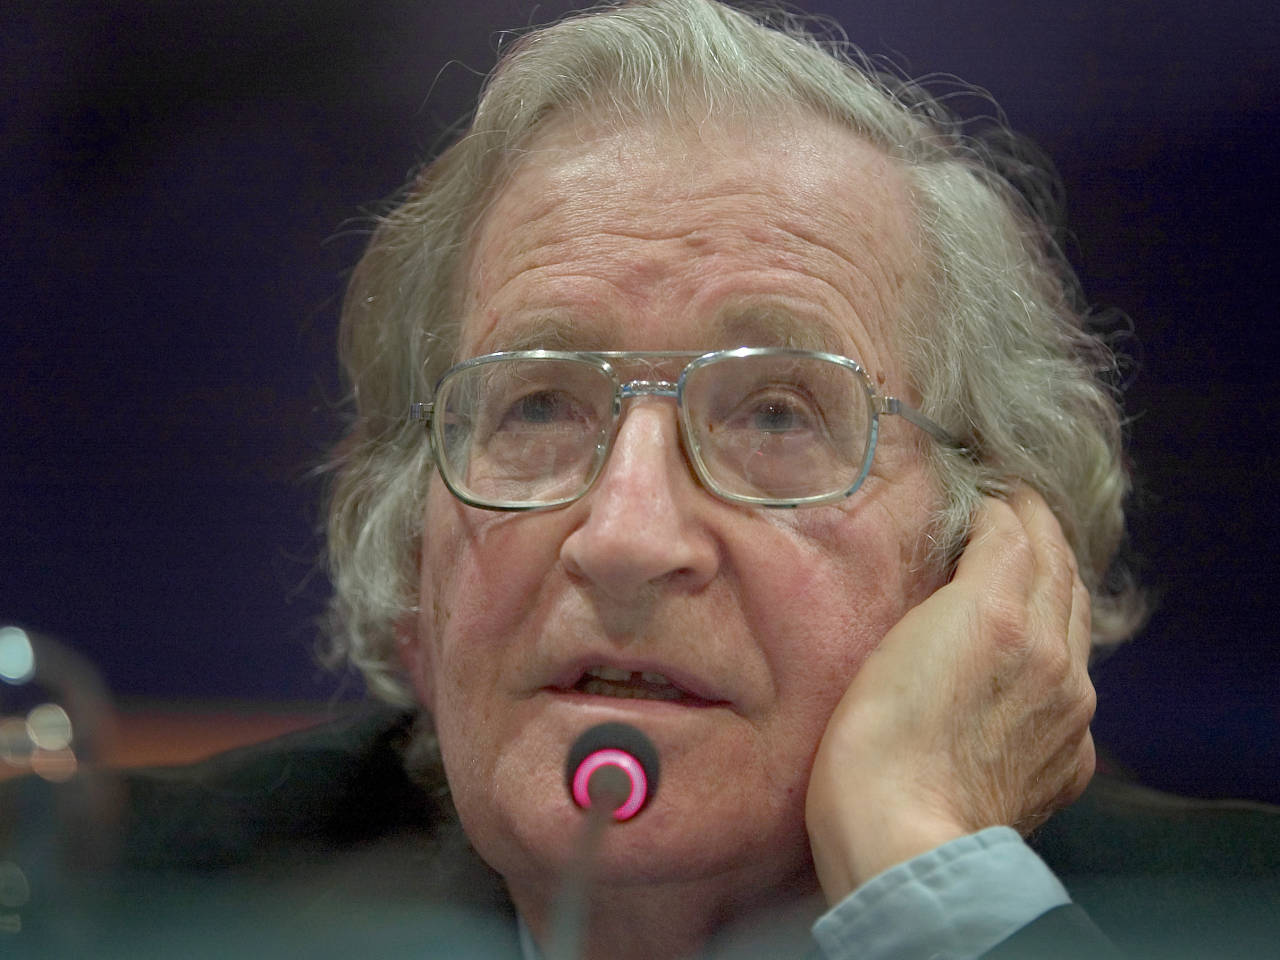 noam chomsky america is only a democracy for the percent  noam chomsky america is only a democracy for the 1 percent com